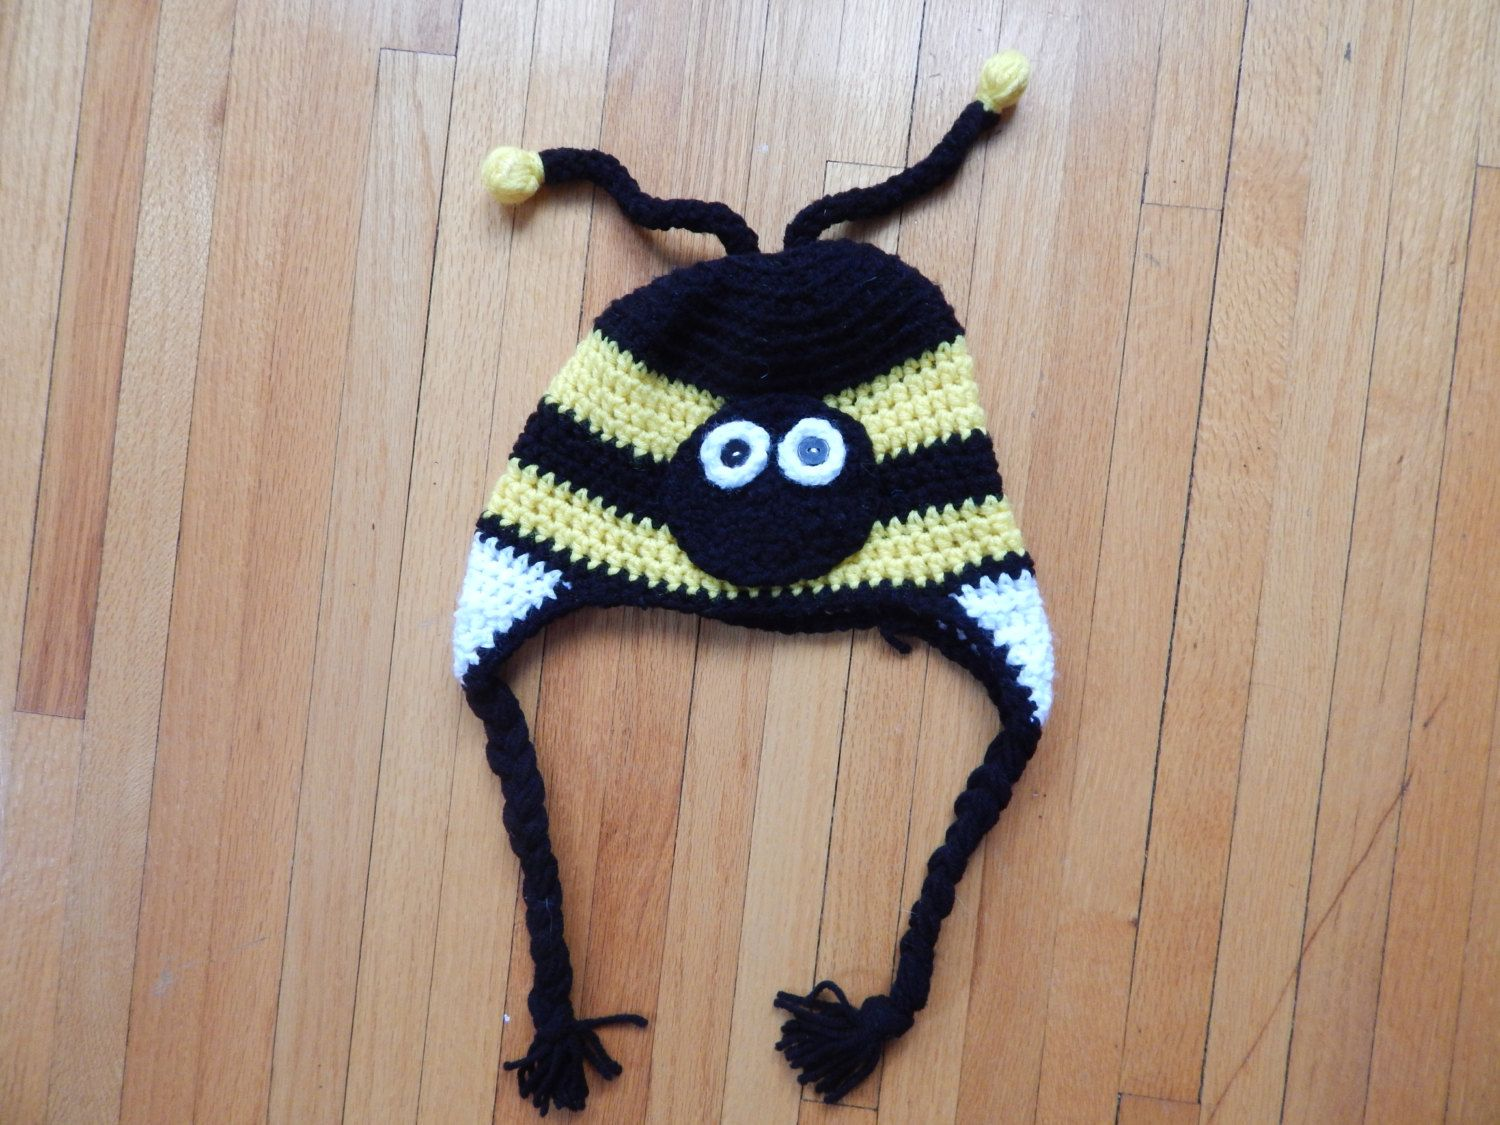 Crochet Bumble Bee Hat For Toddler By Crochethatsandscarfs On Etsy